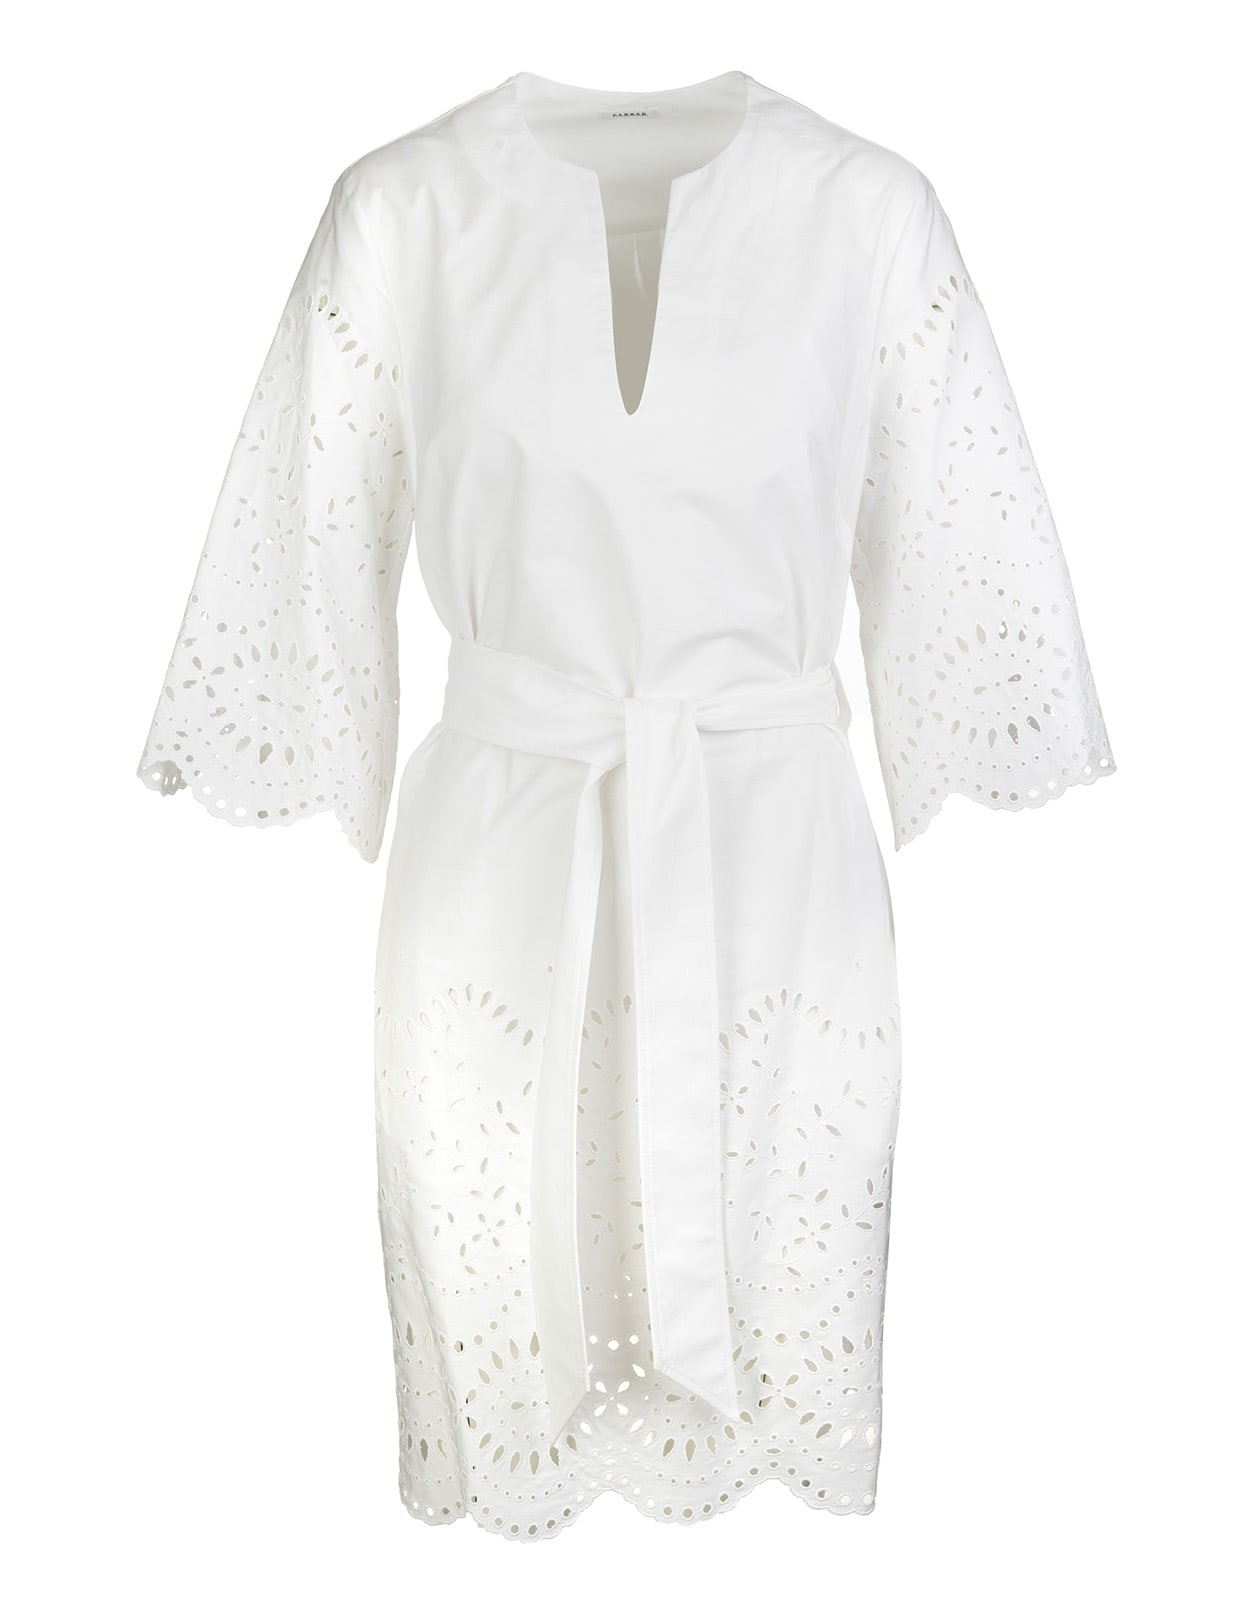 P.a.r.o.s.h. Cottons WHITE MIDI DRESS WITH BRODERIE ANGLAISE AND WIDE SLEEVES